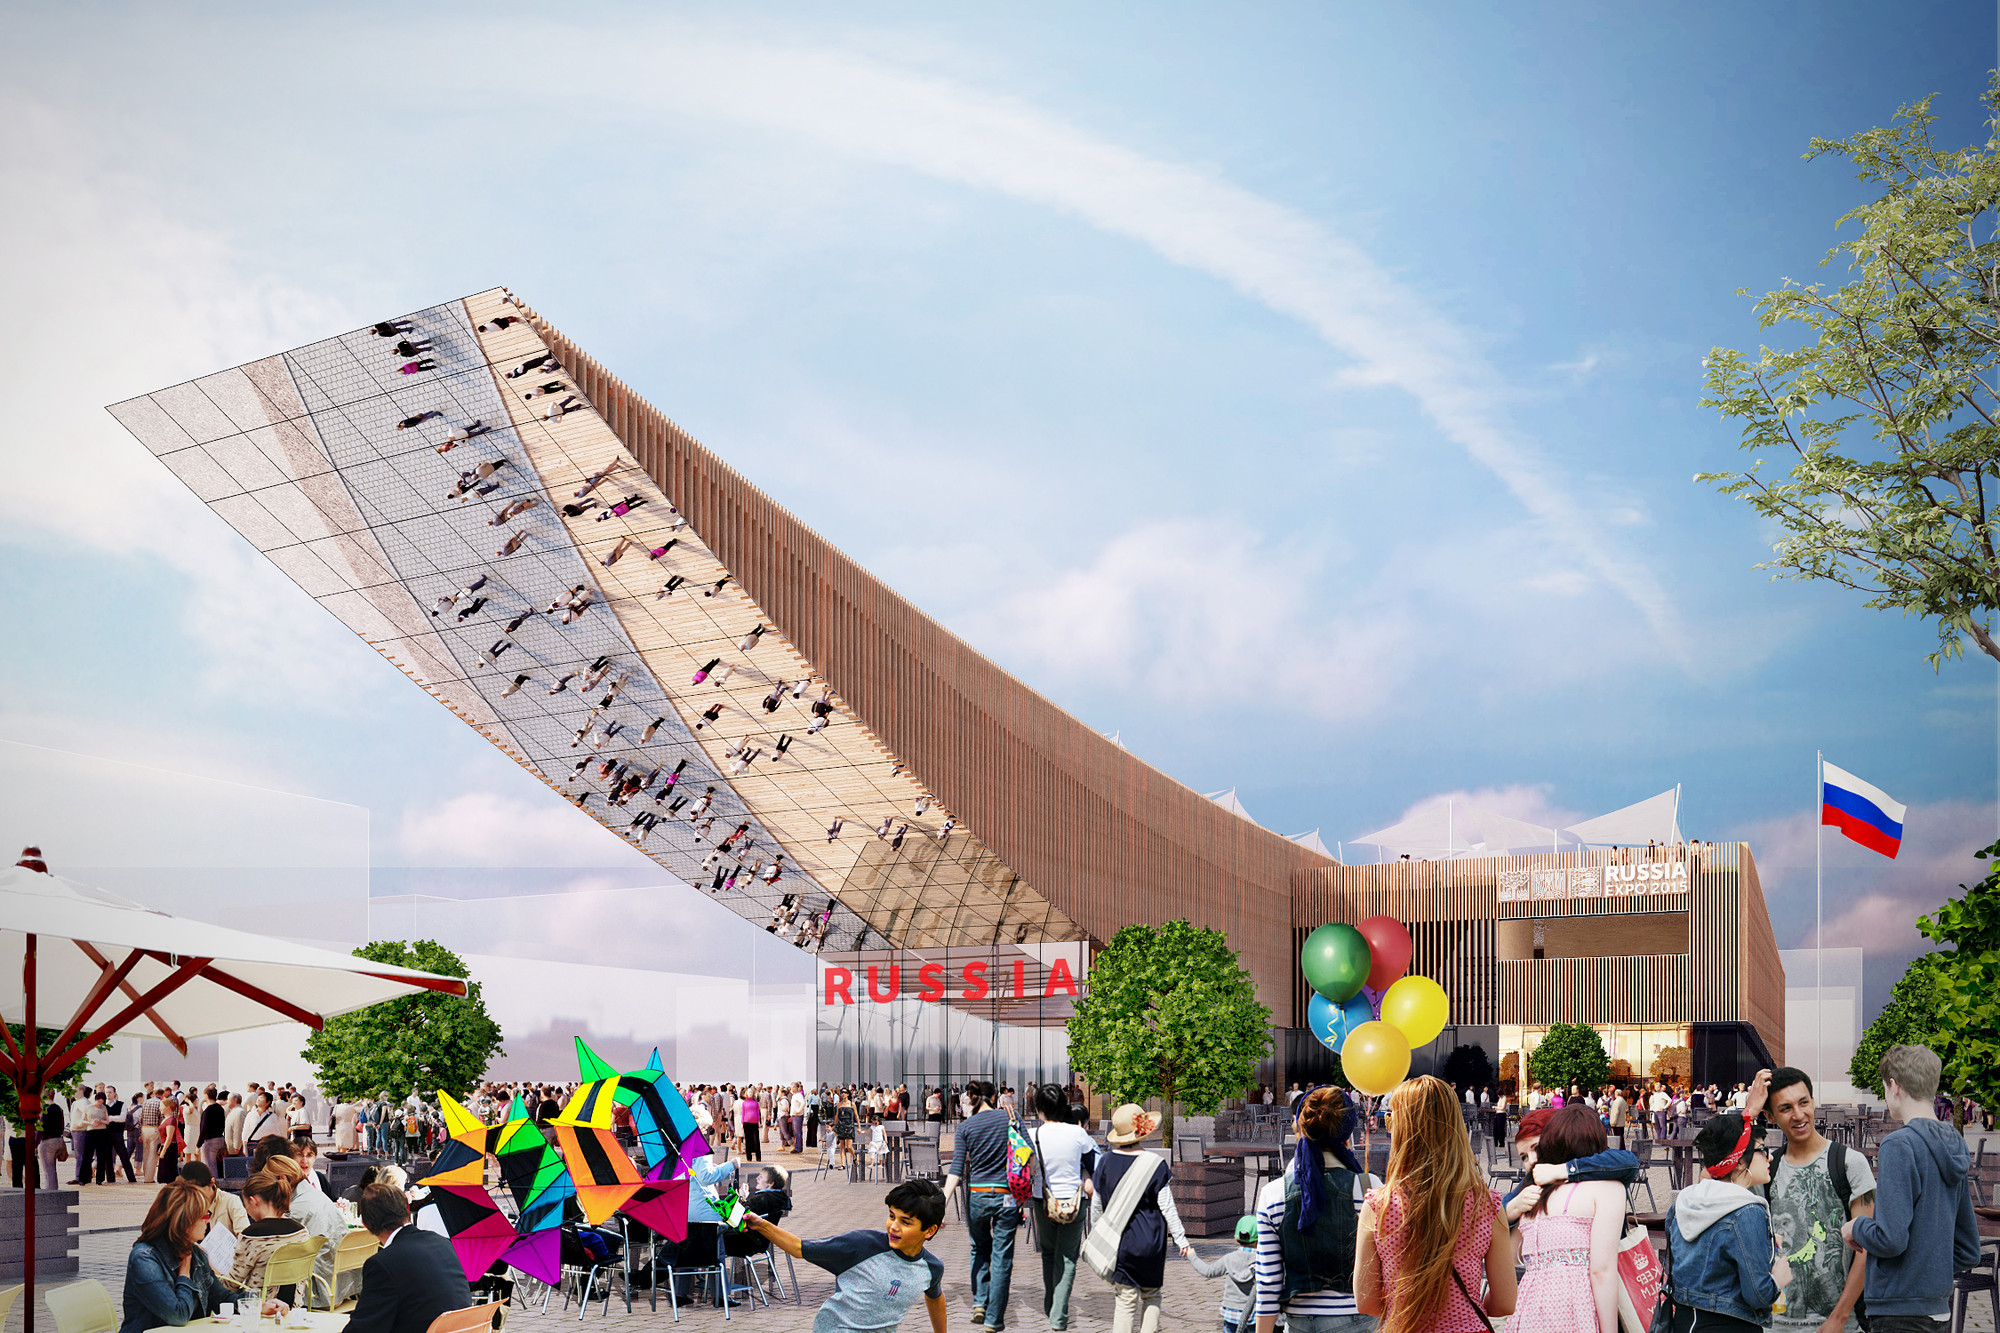 Milan Expo 2015: Russia to Exhibit Expansive Timber Pavilion, Courtesy of Eventica Communications